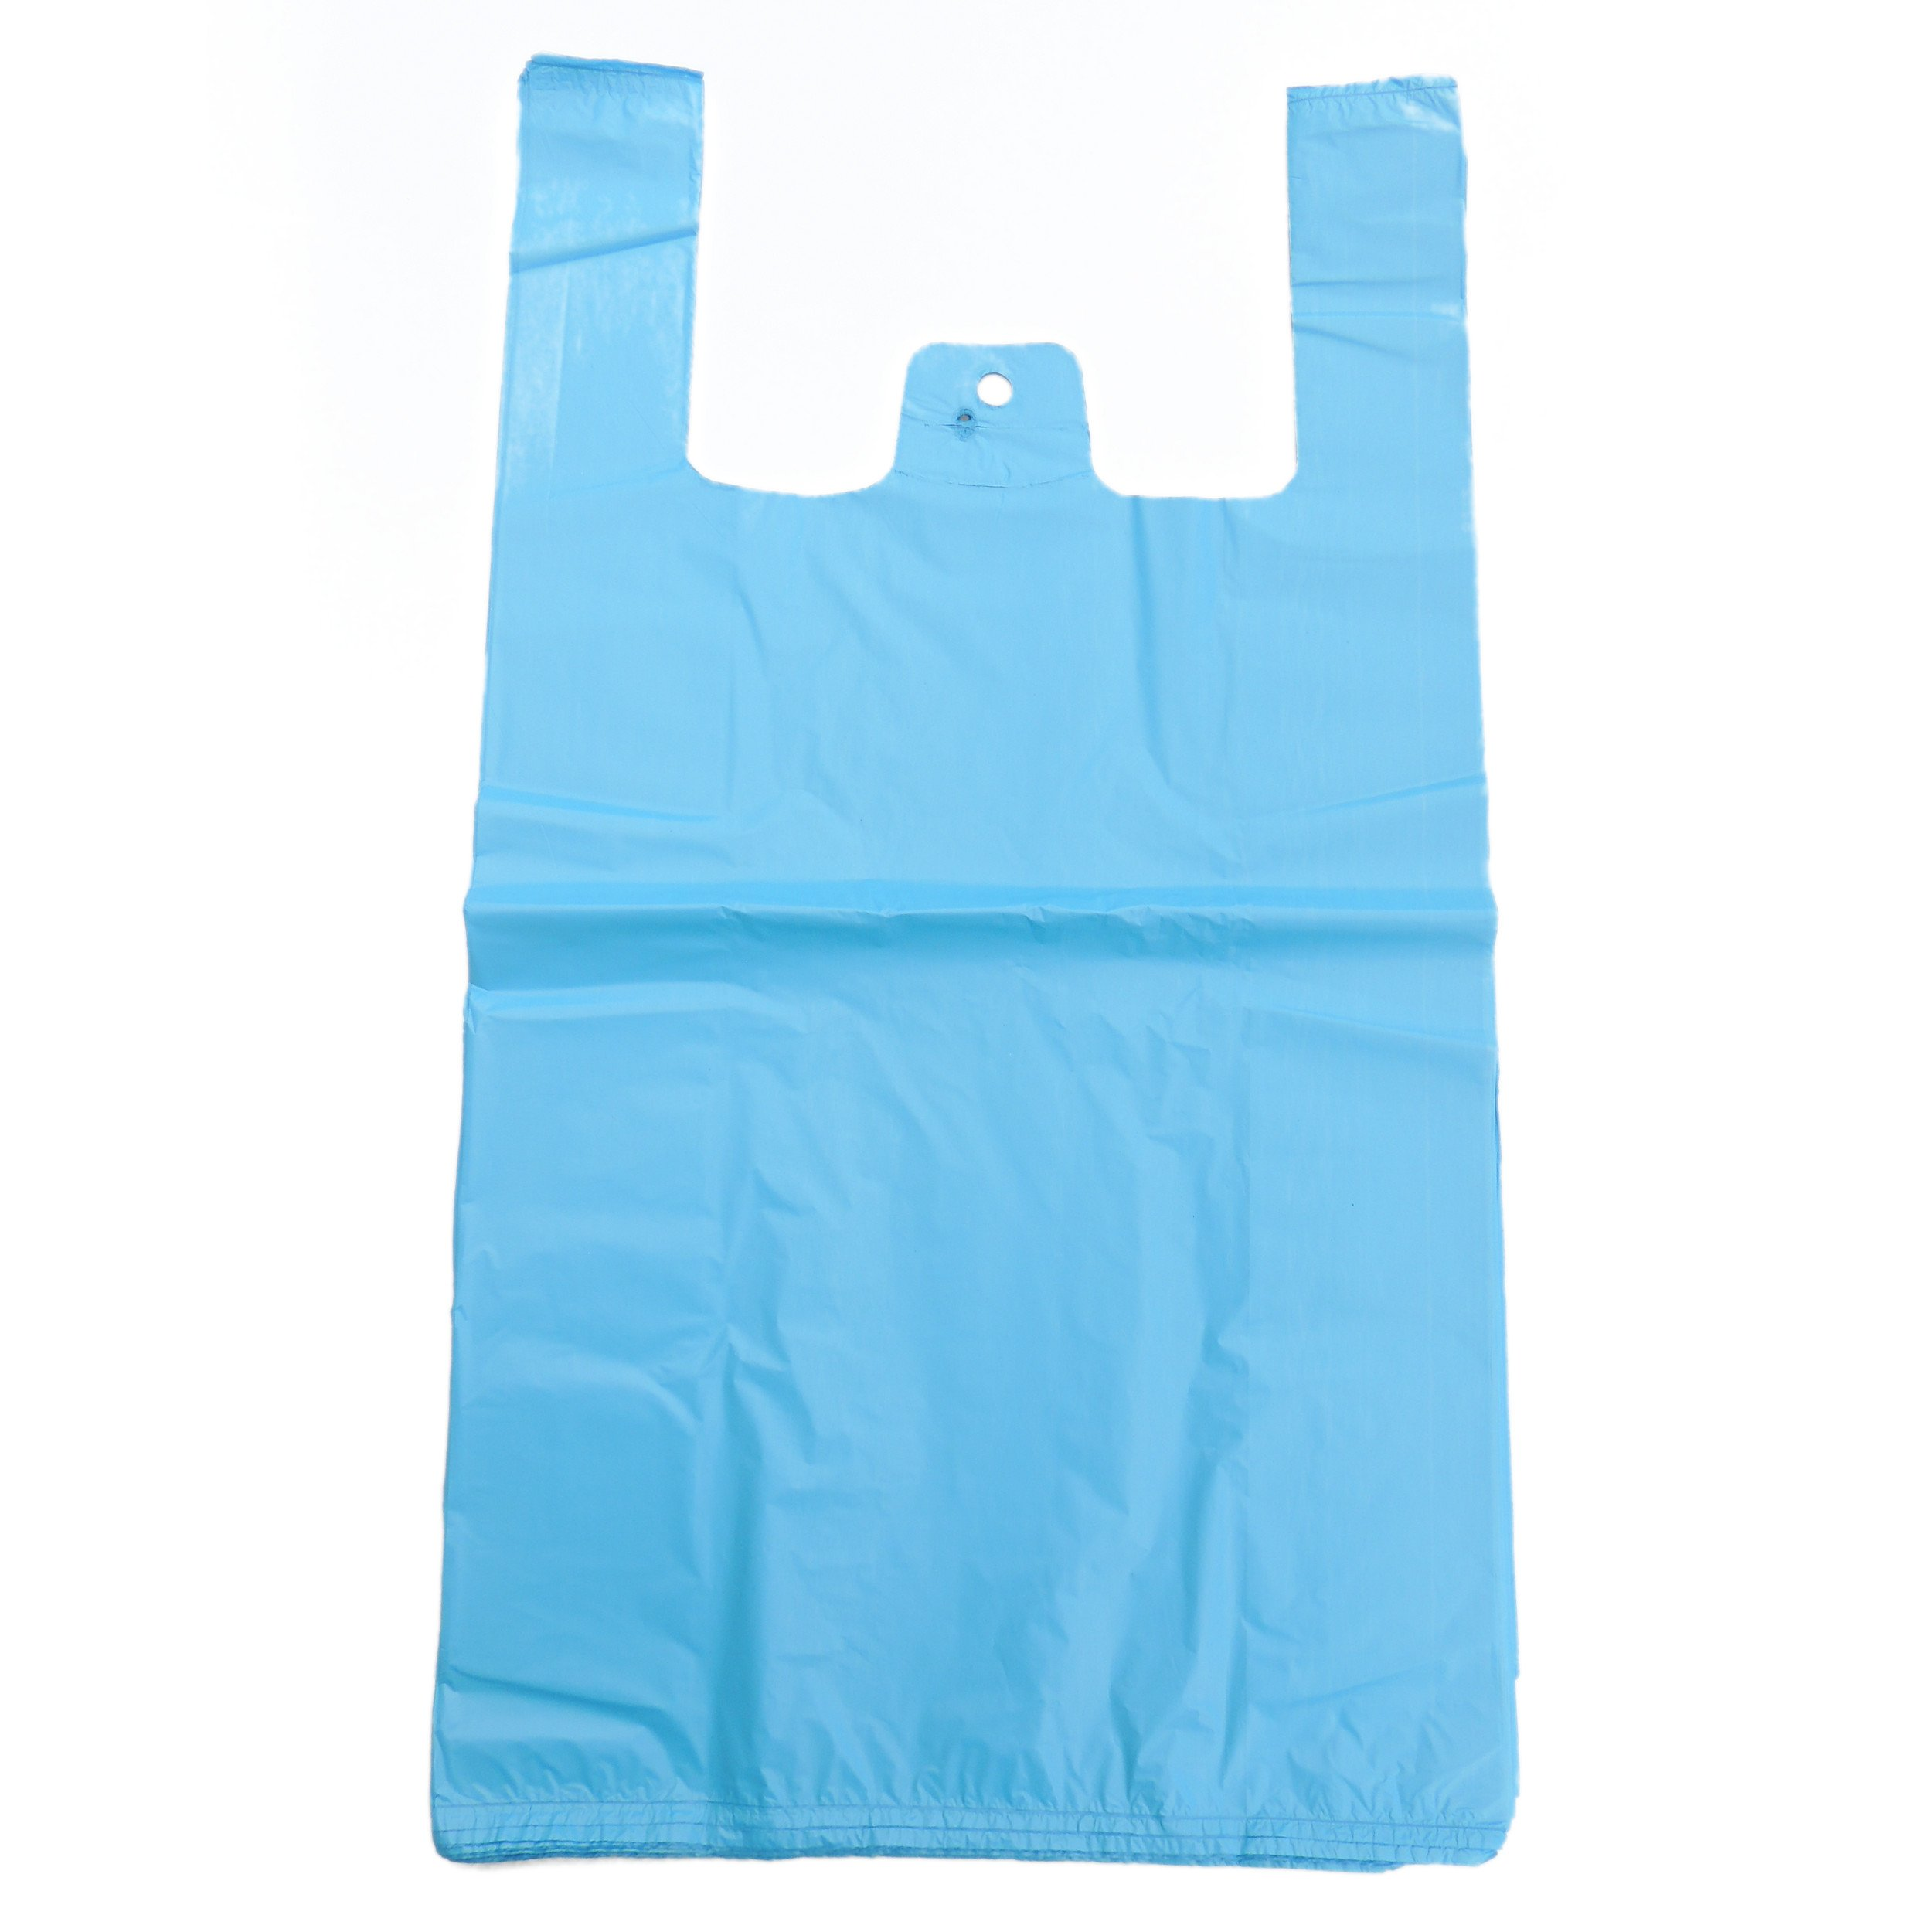 NEW PLASTIC VEST CARRIER BAGS BLUE OR WHITE 11X17X21 100 bags